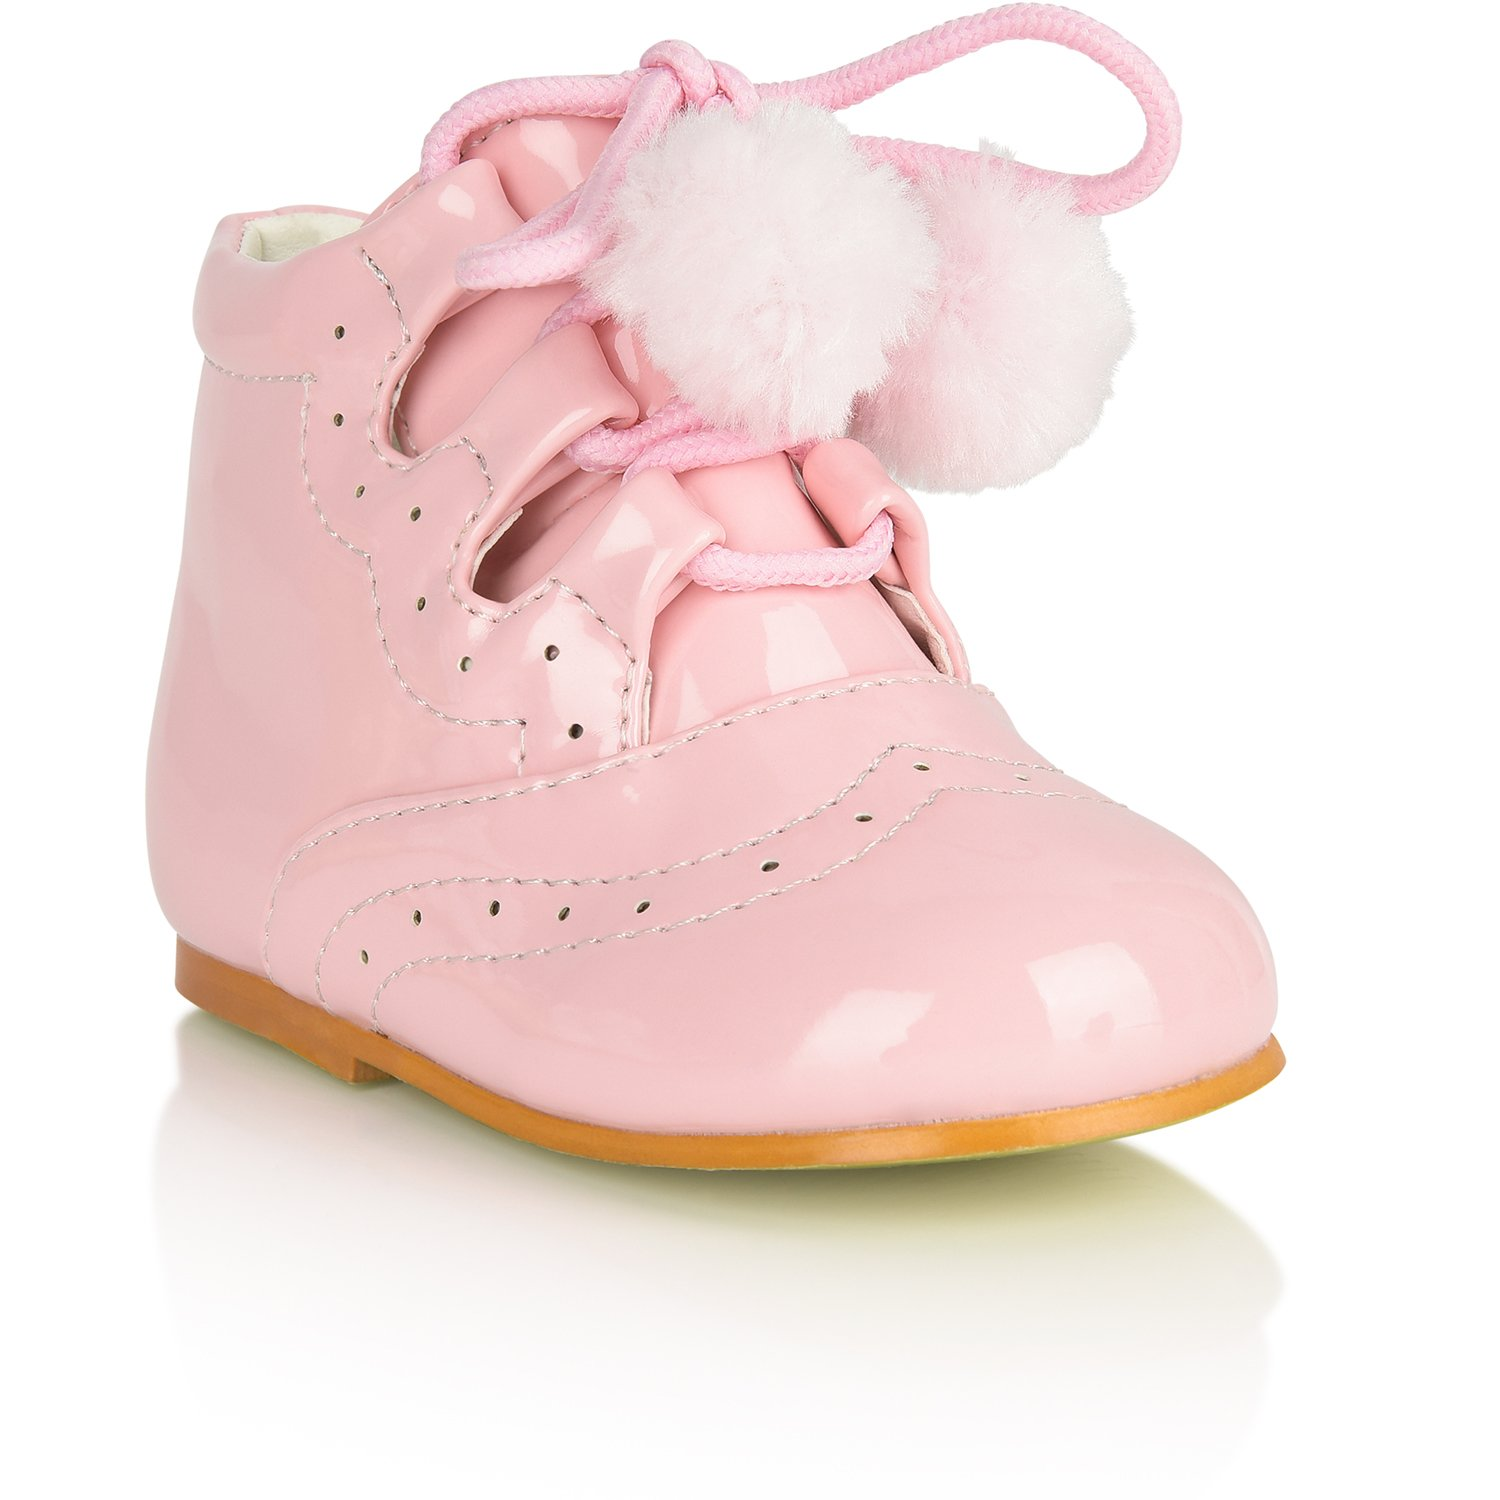 4083c0854 Tia Baby Infant Girls Spanish Pom Pom Boots Faux Patent Wedding Party Infant  Size UK 1-8 White Navy Blue Pink Red: Amazon.co.uk: Shoes & Bags